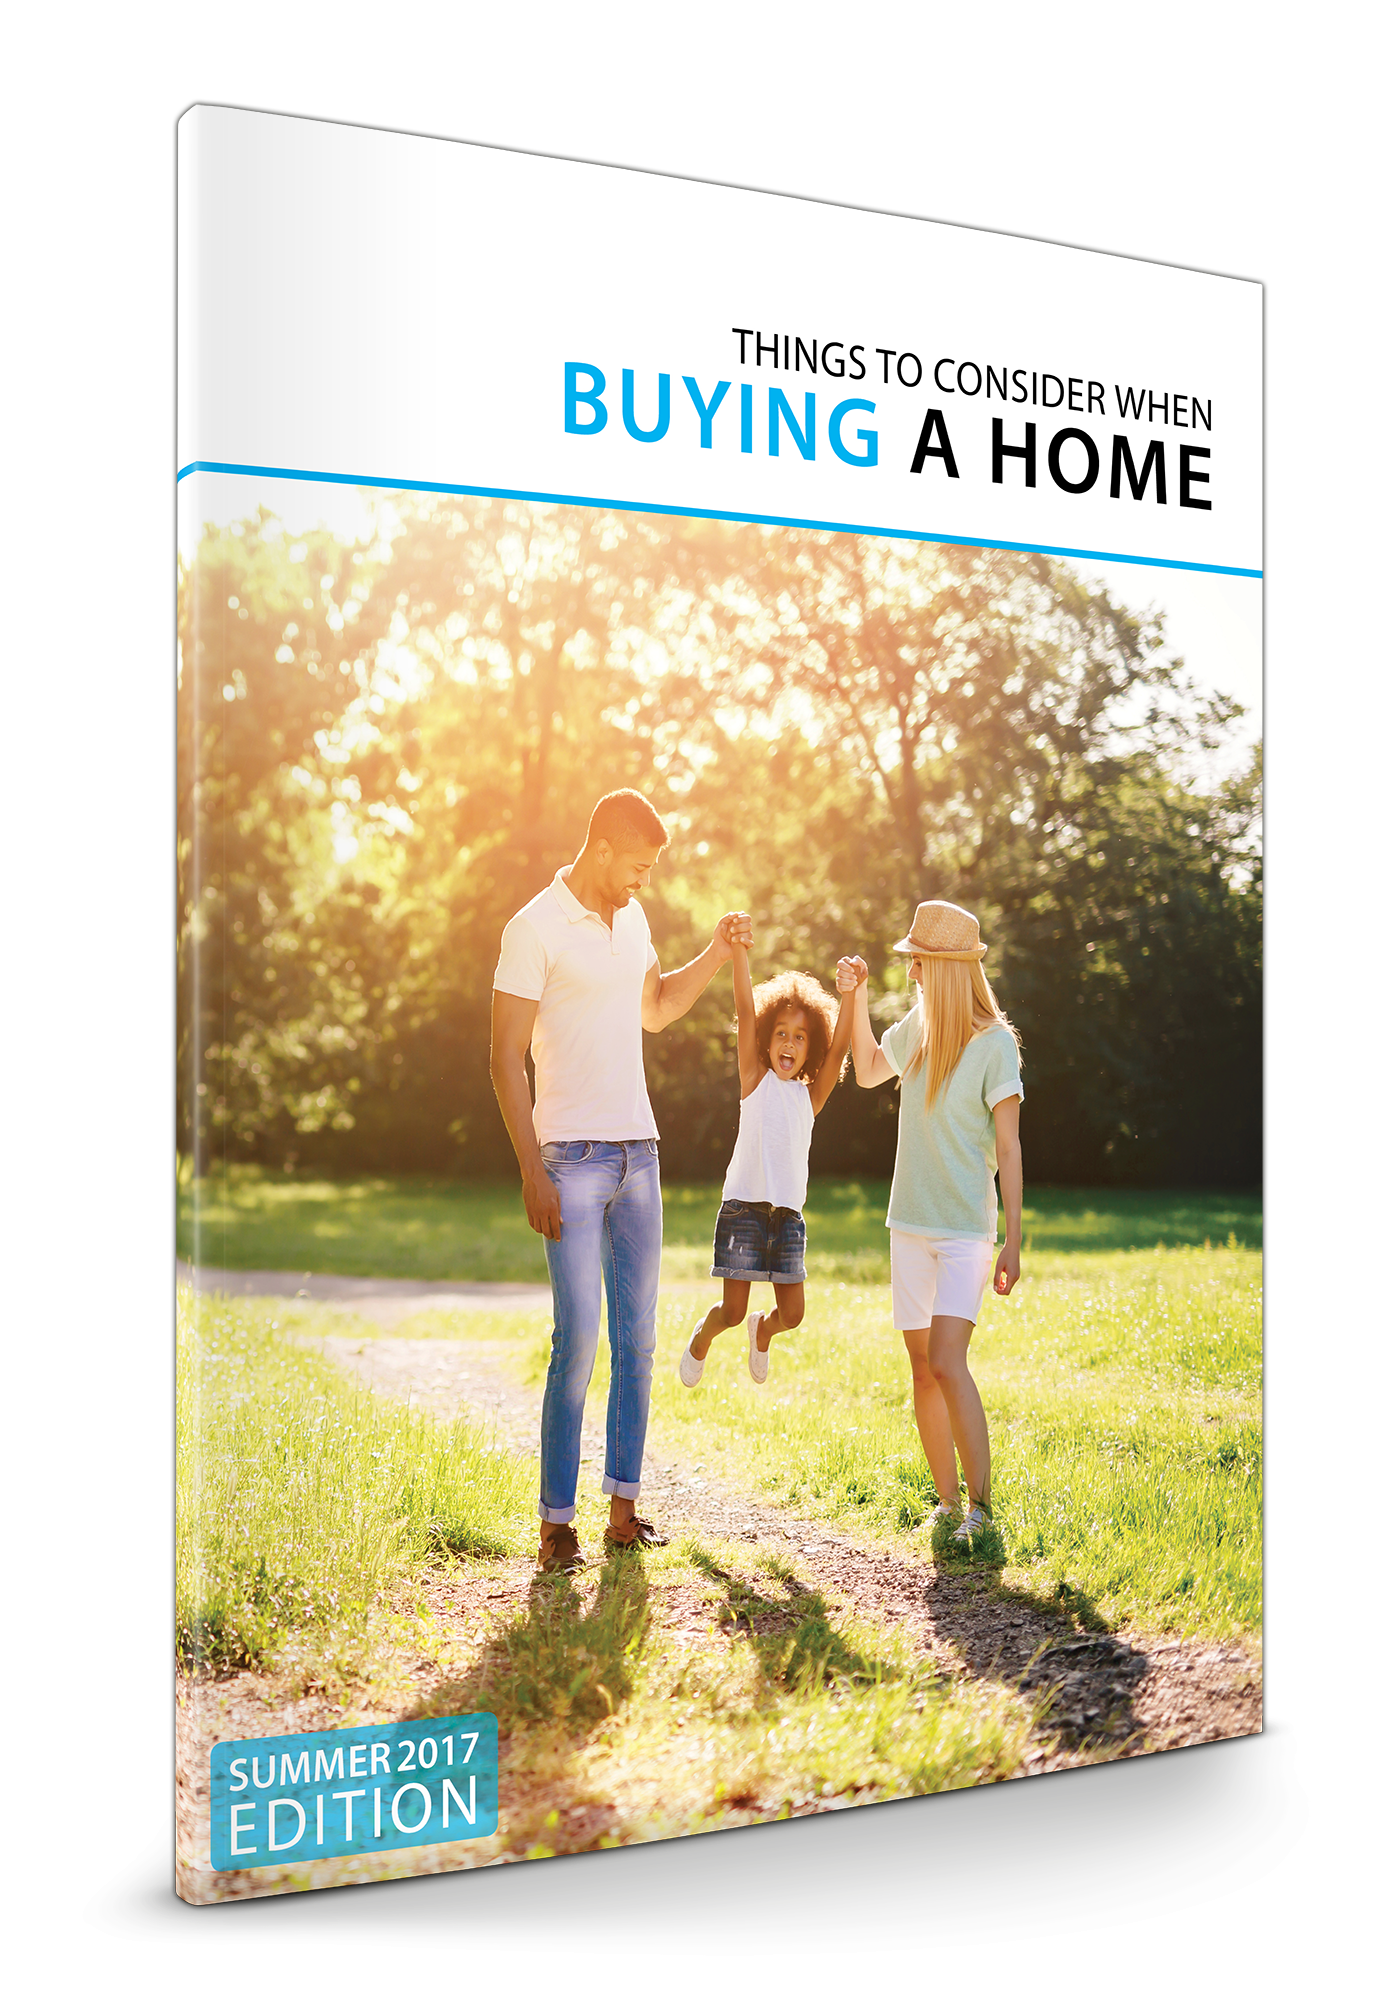 Sedona home buying guide Summer 2017